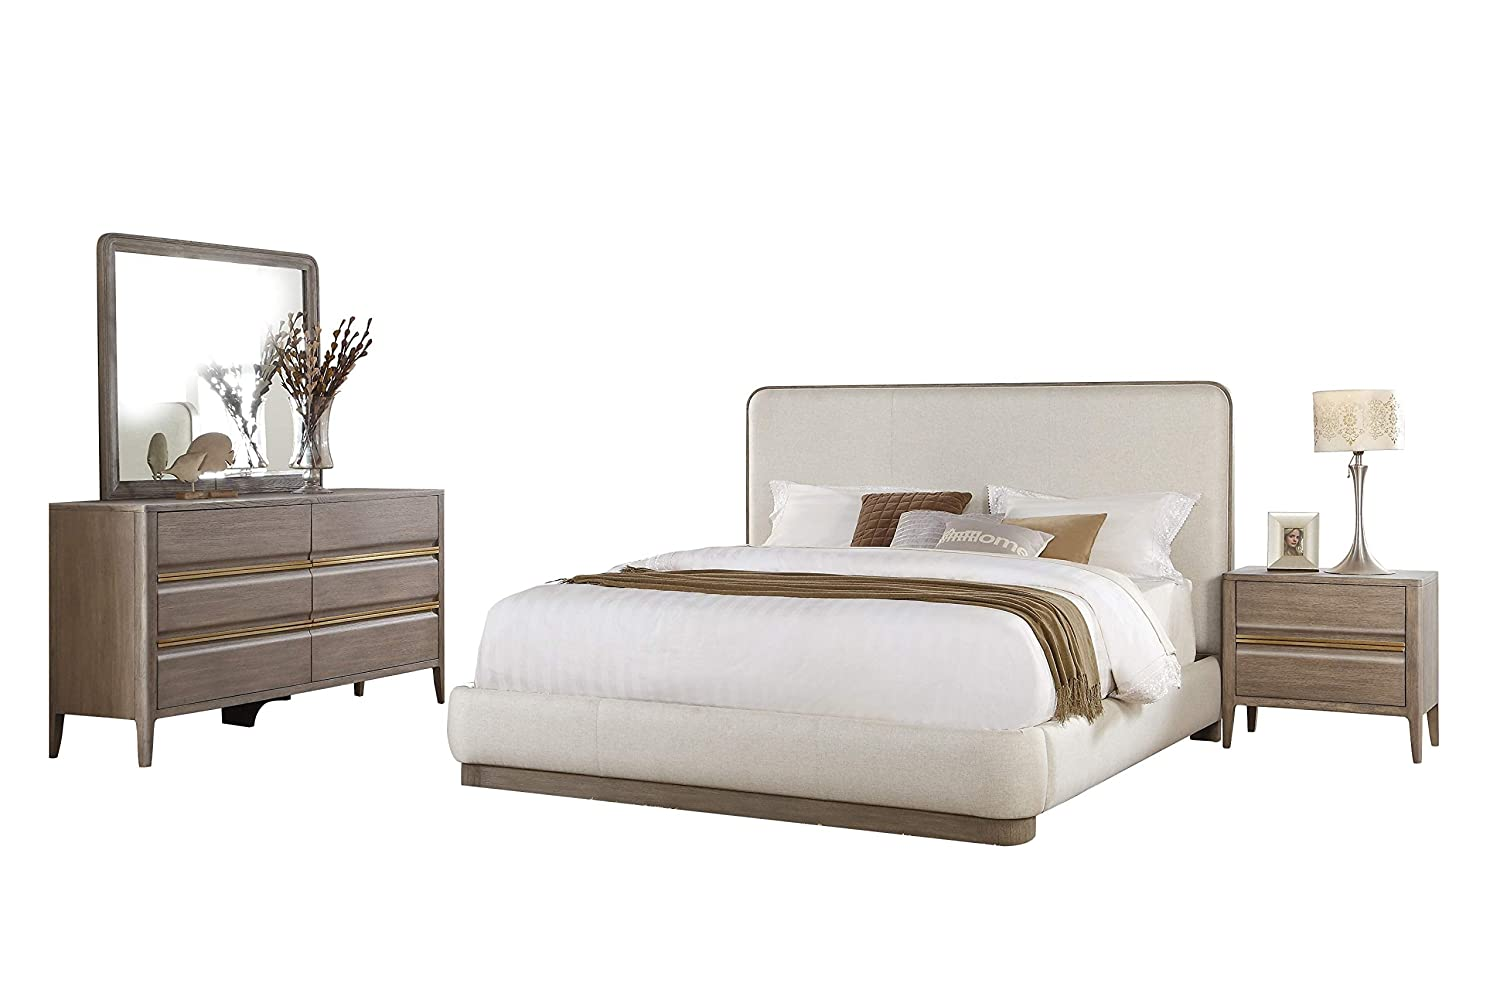 Amazon.com: Alicante Mid Century Modern 4PC Bedroom Set Cal ...